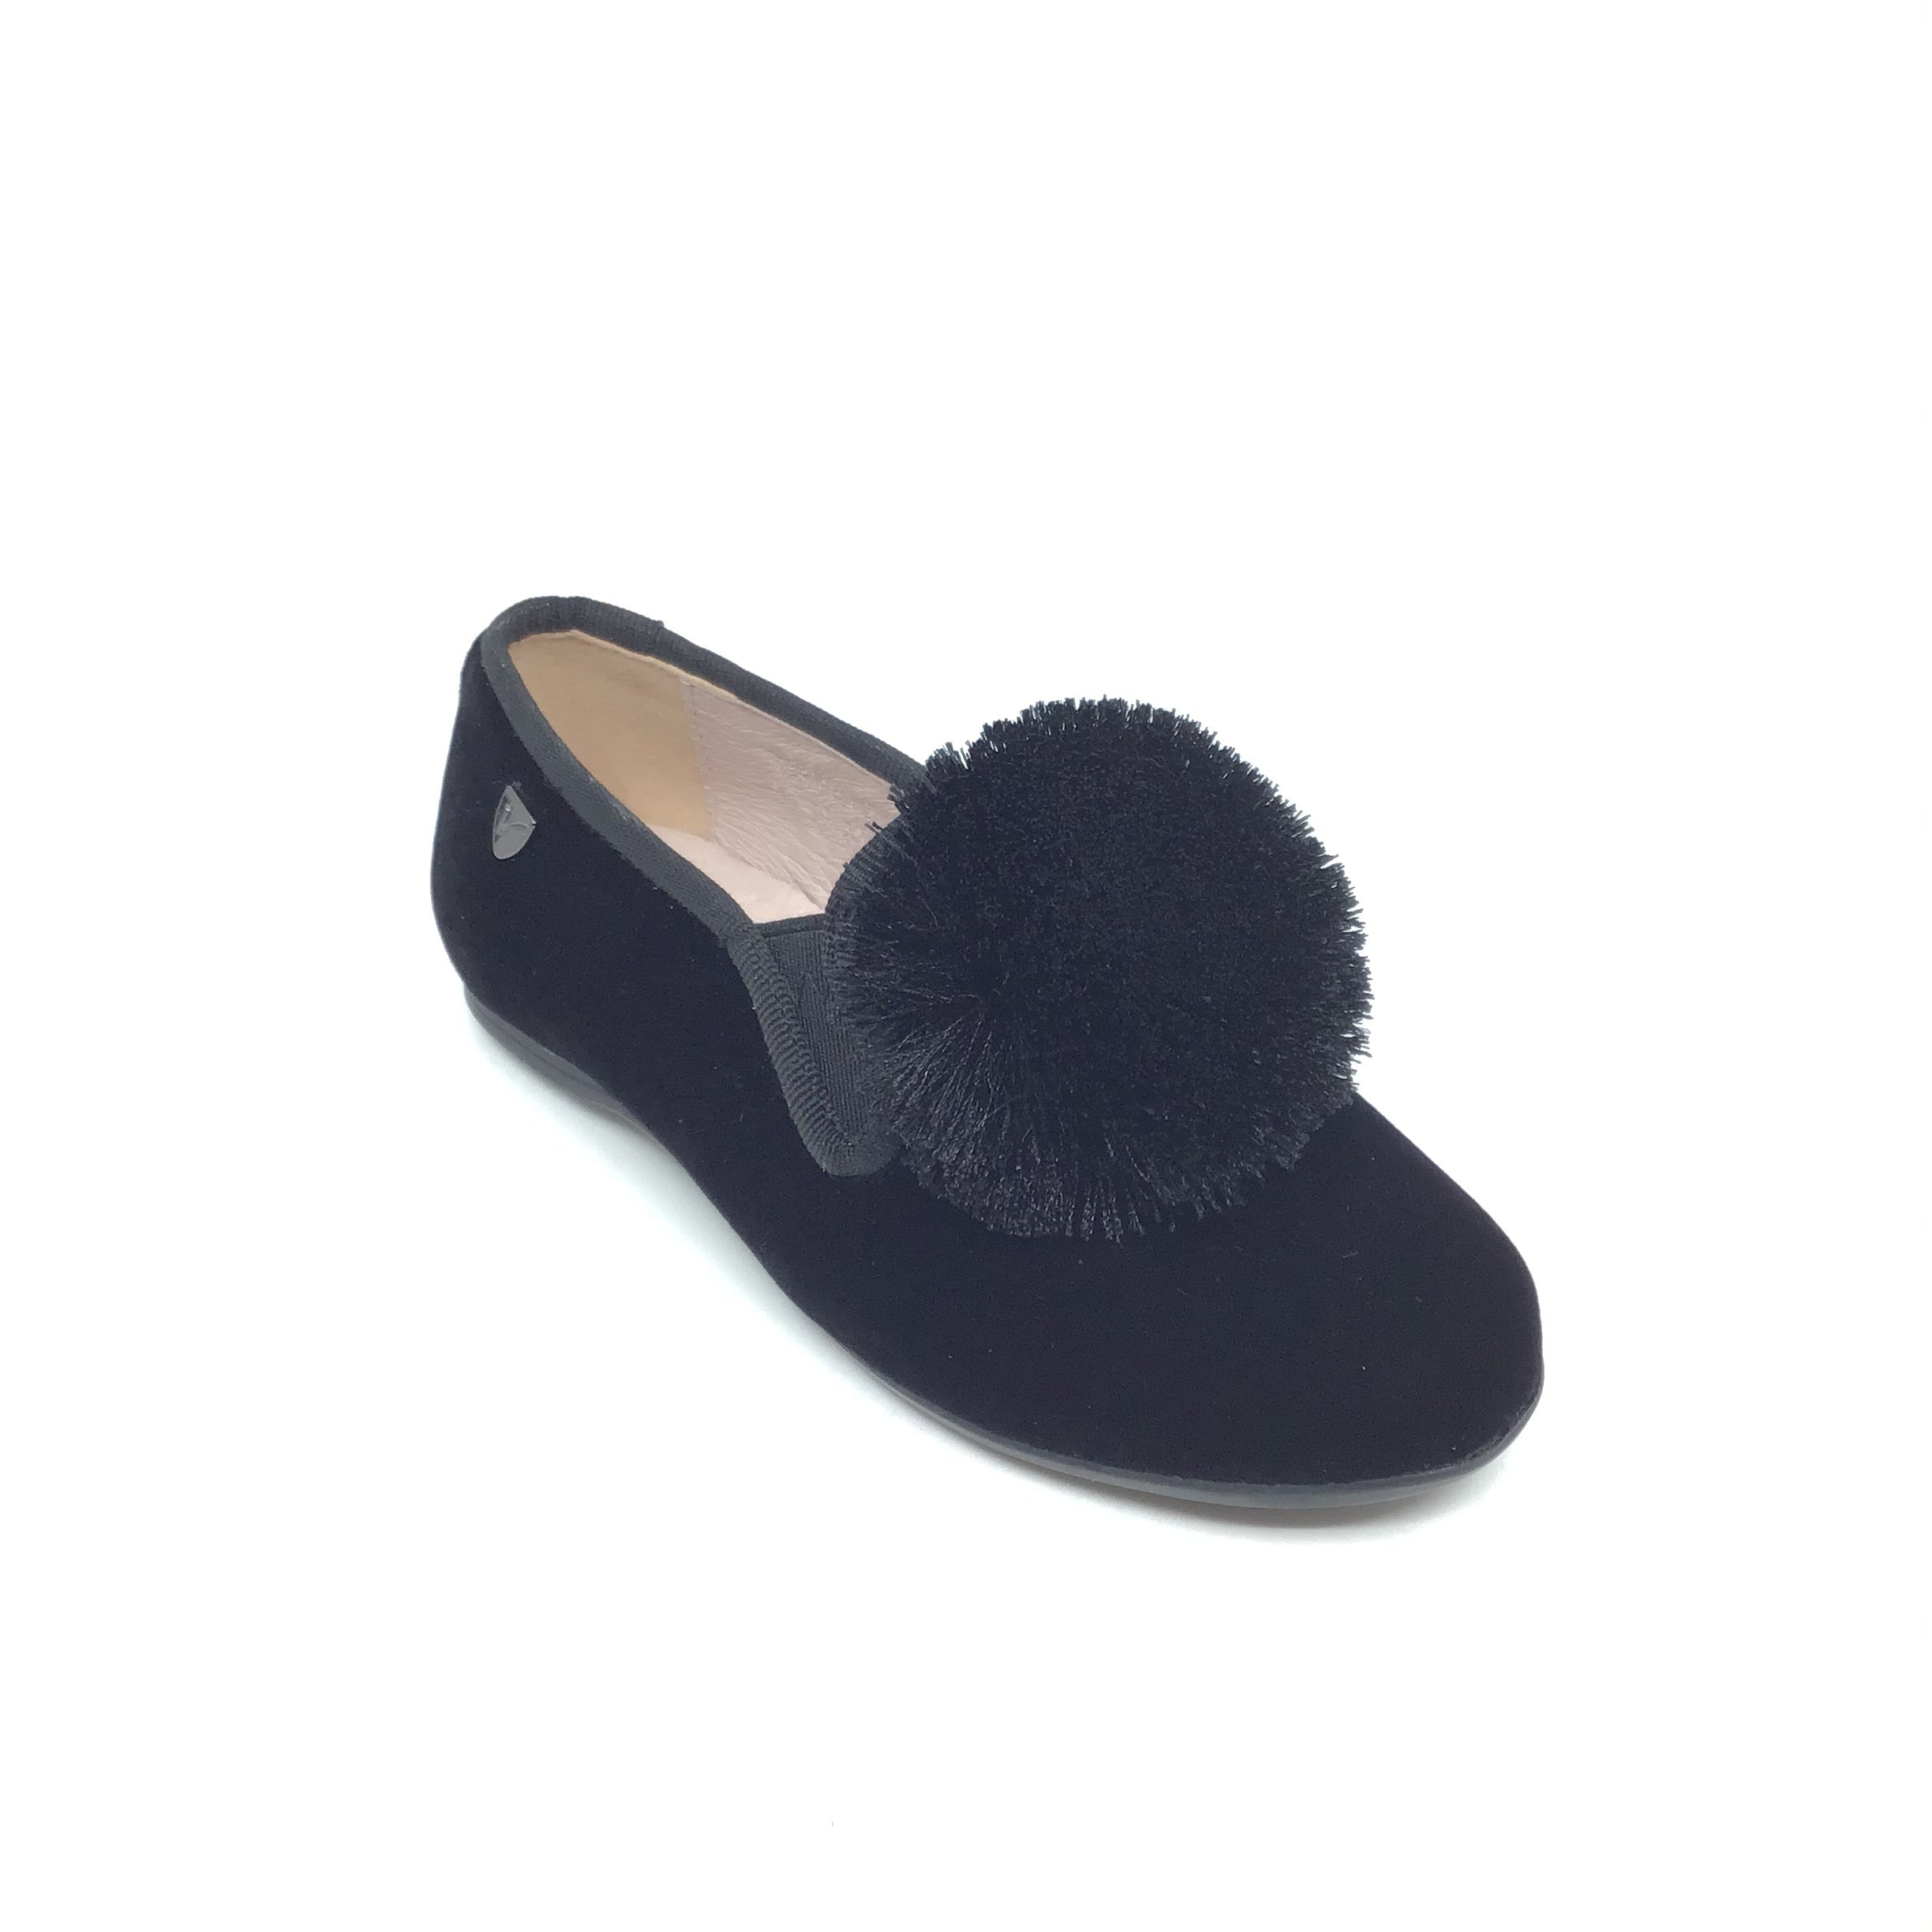 Venettini Black Velvet Slip On with Pom Pom